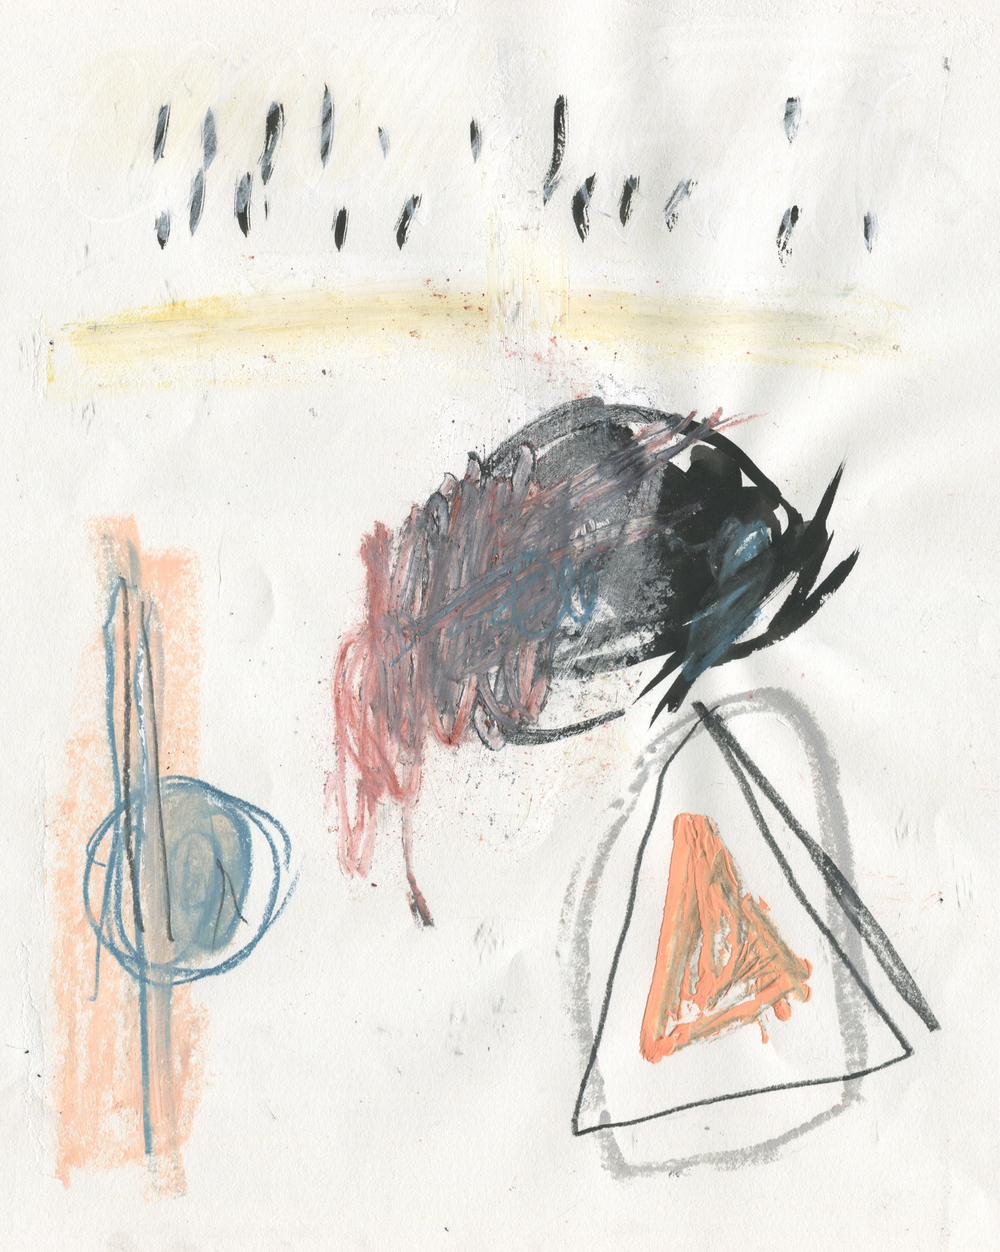 Formative Supposition , 2016  14 x 11 inches  Crayon, Ink, Graphite, Oil Pastel, Gouache and Chalk Pastel on Paper